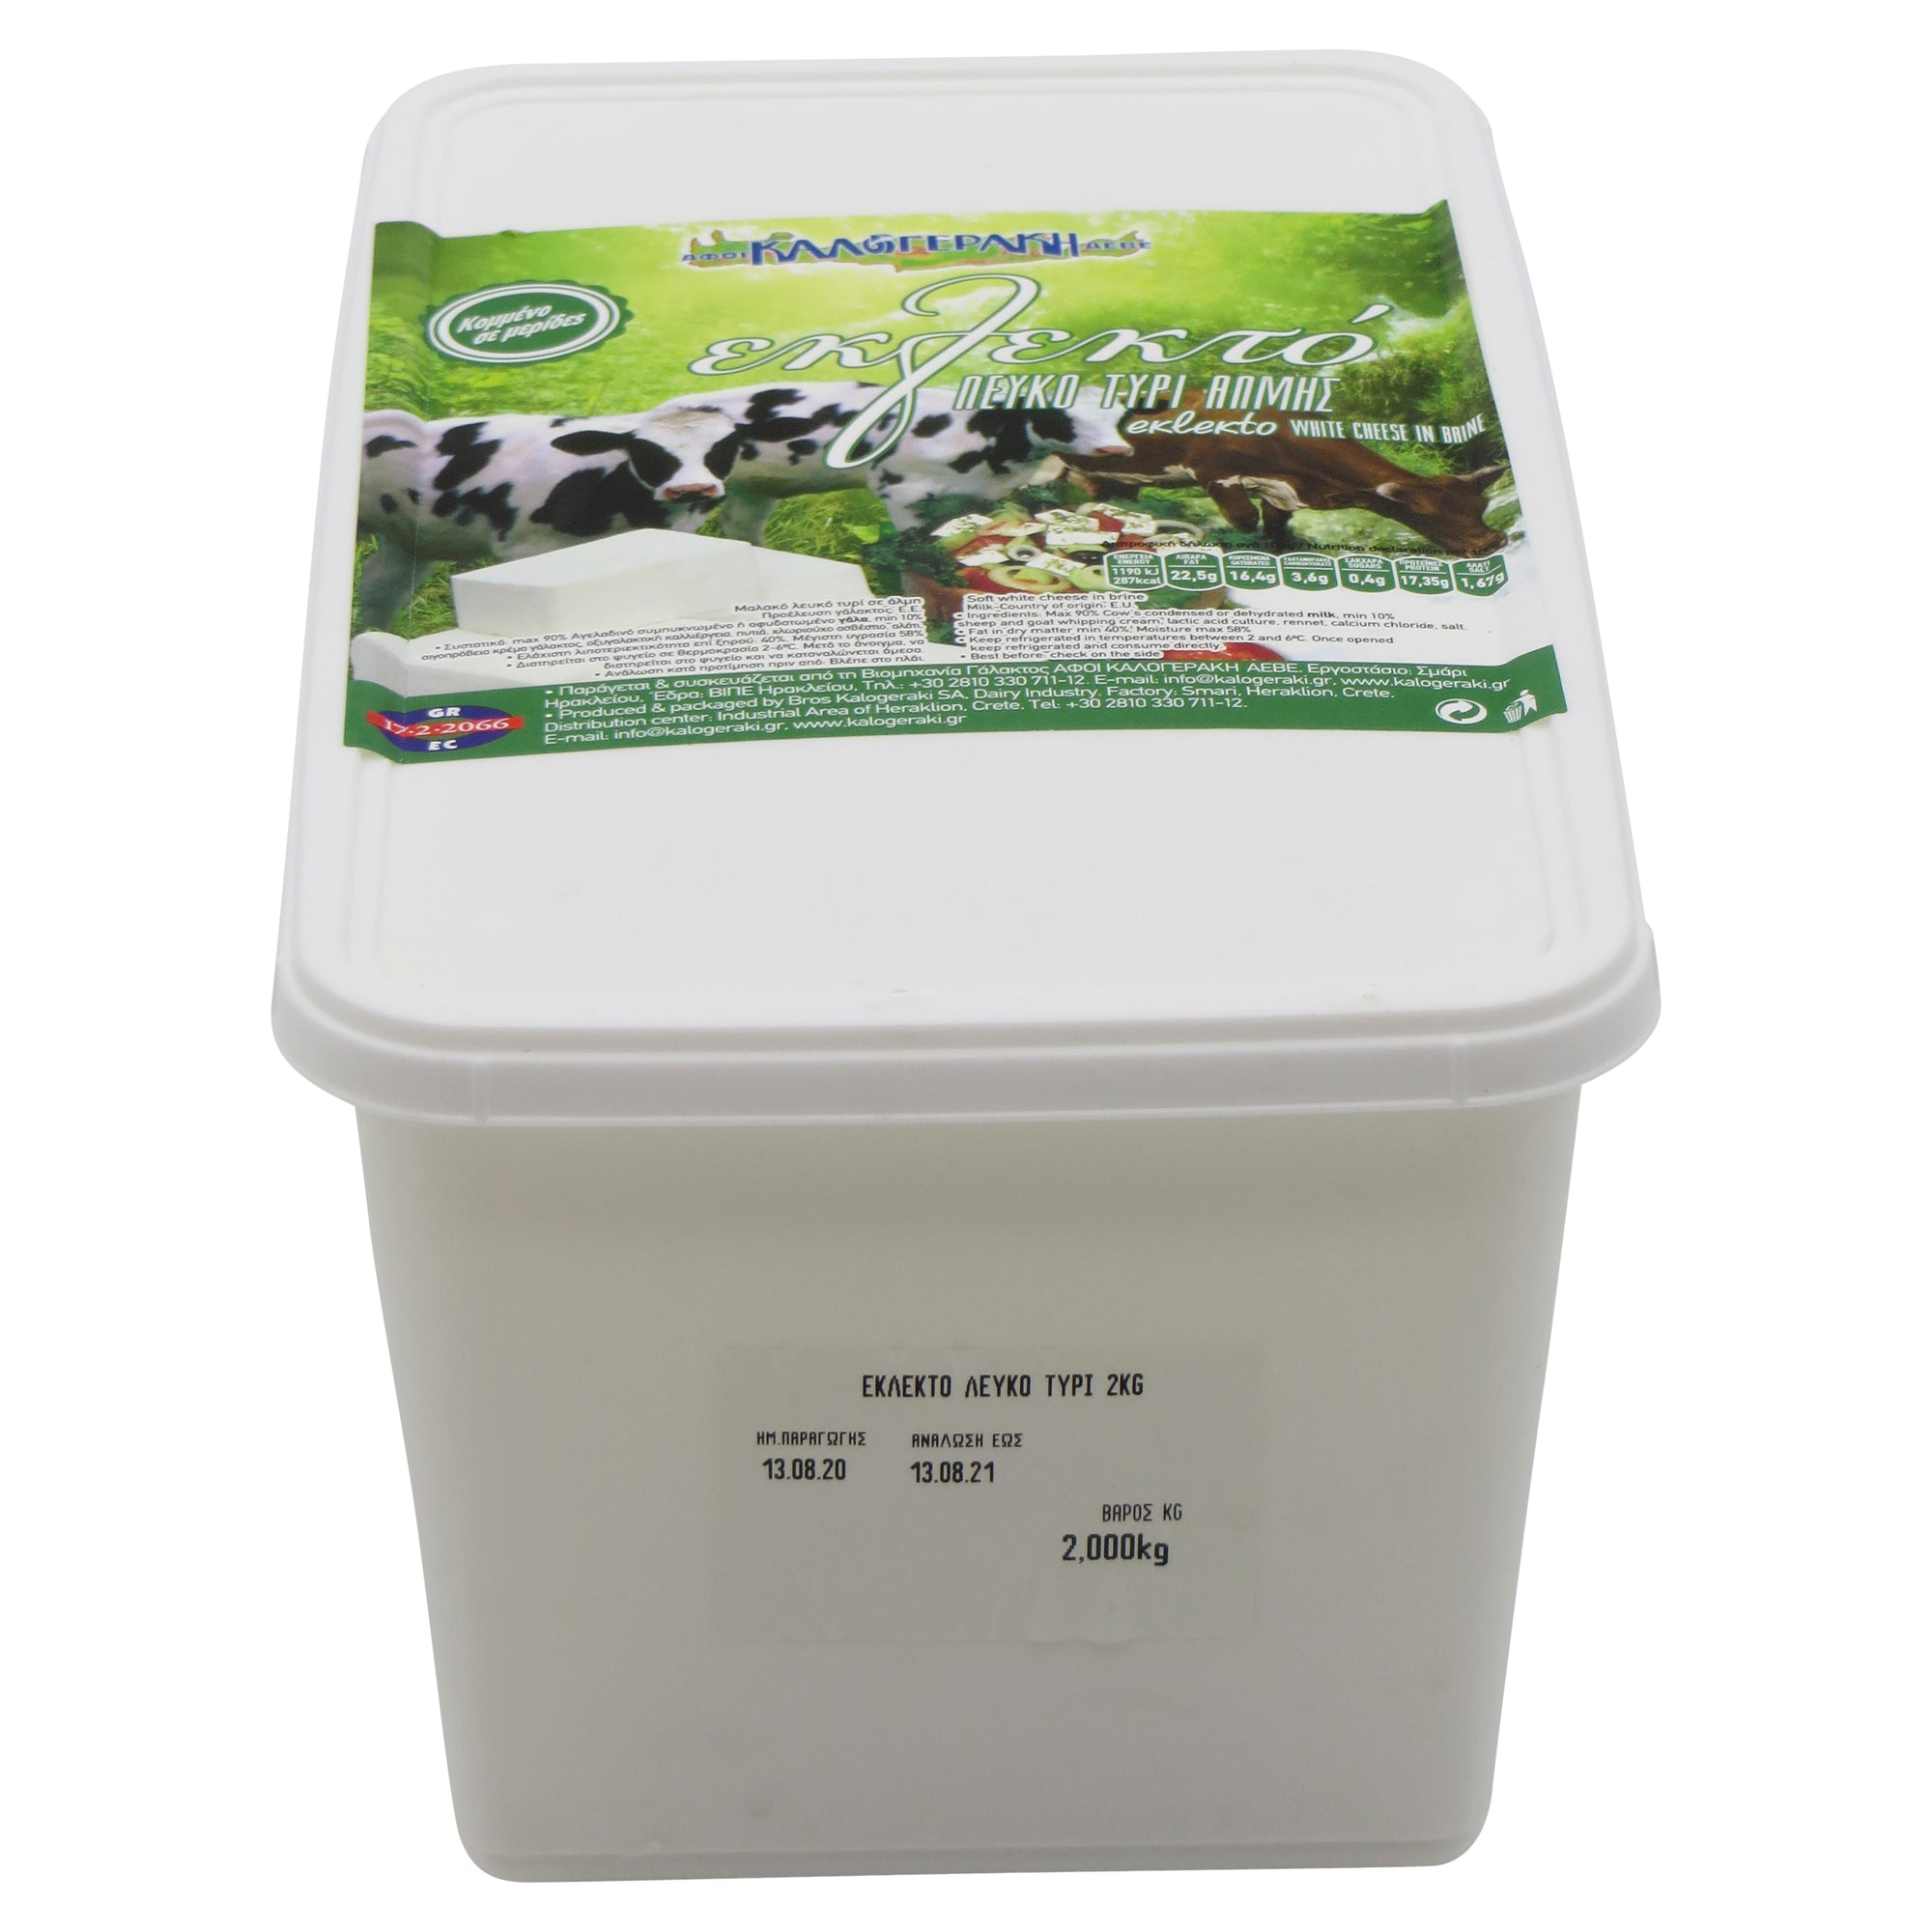 Cow Feta portions in brine 2kg (Eklekto white cheese)